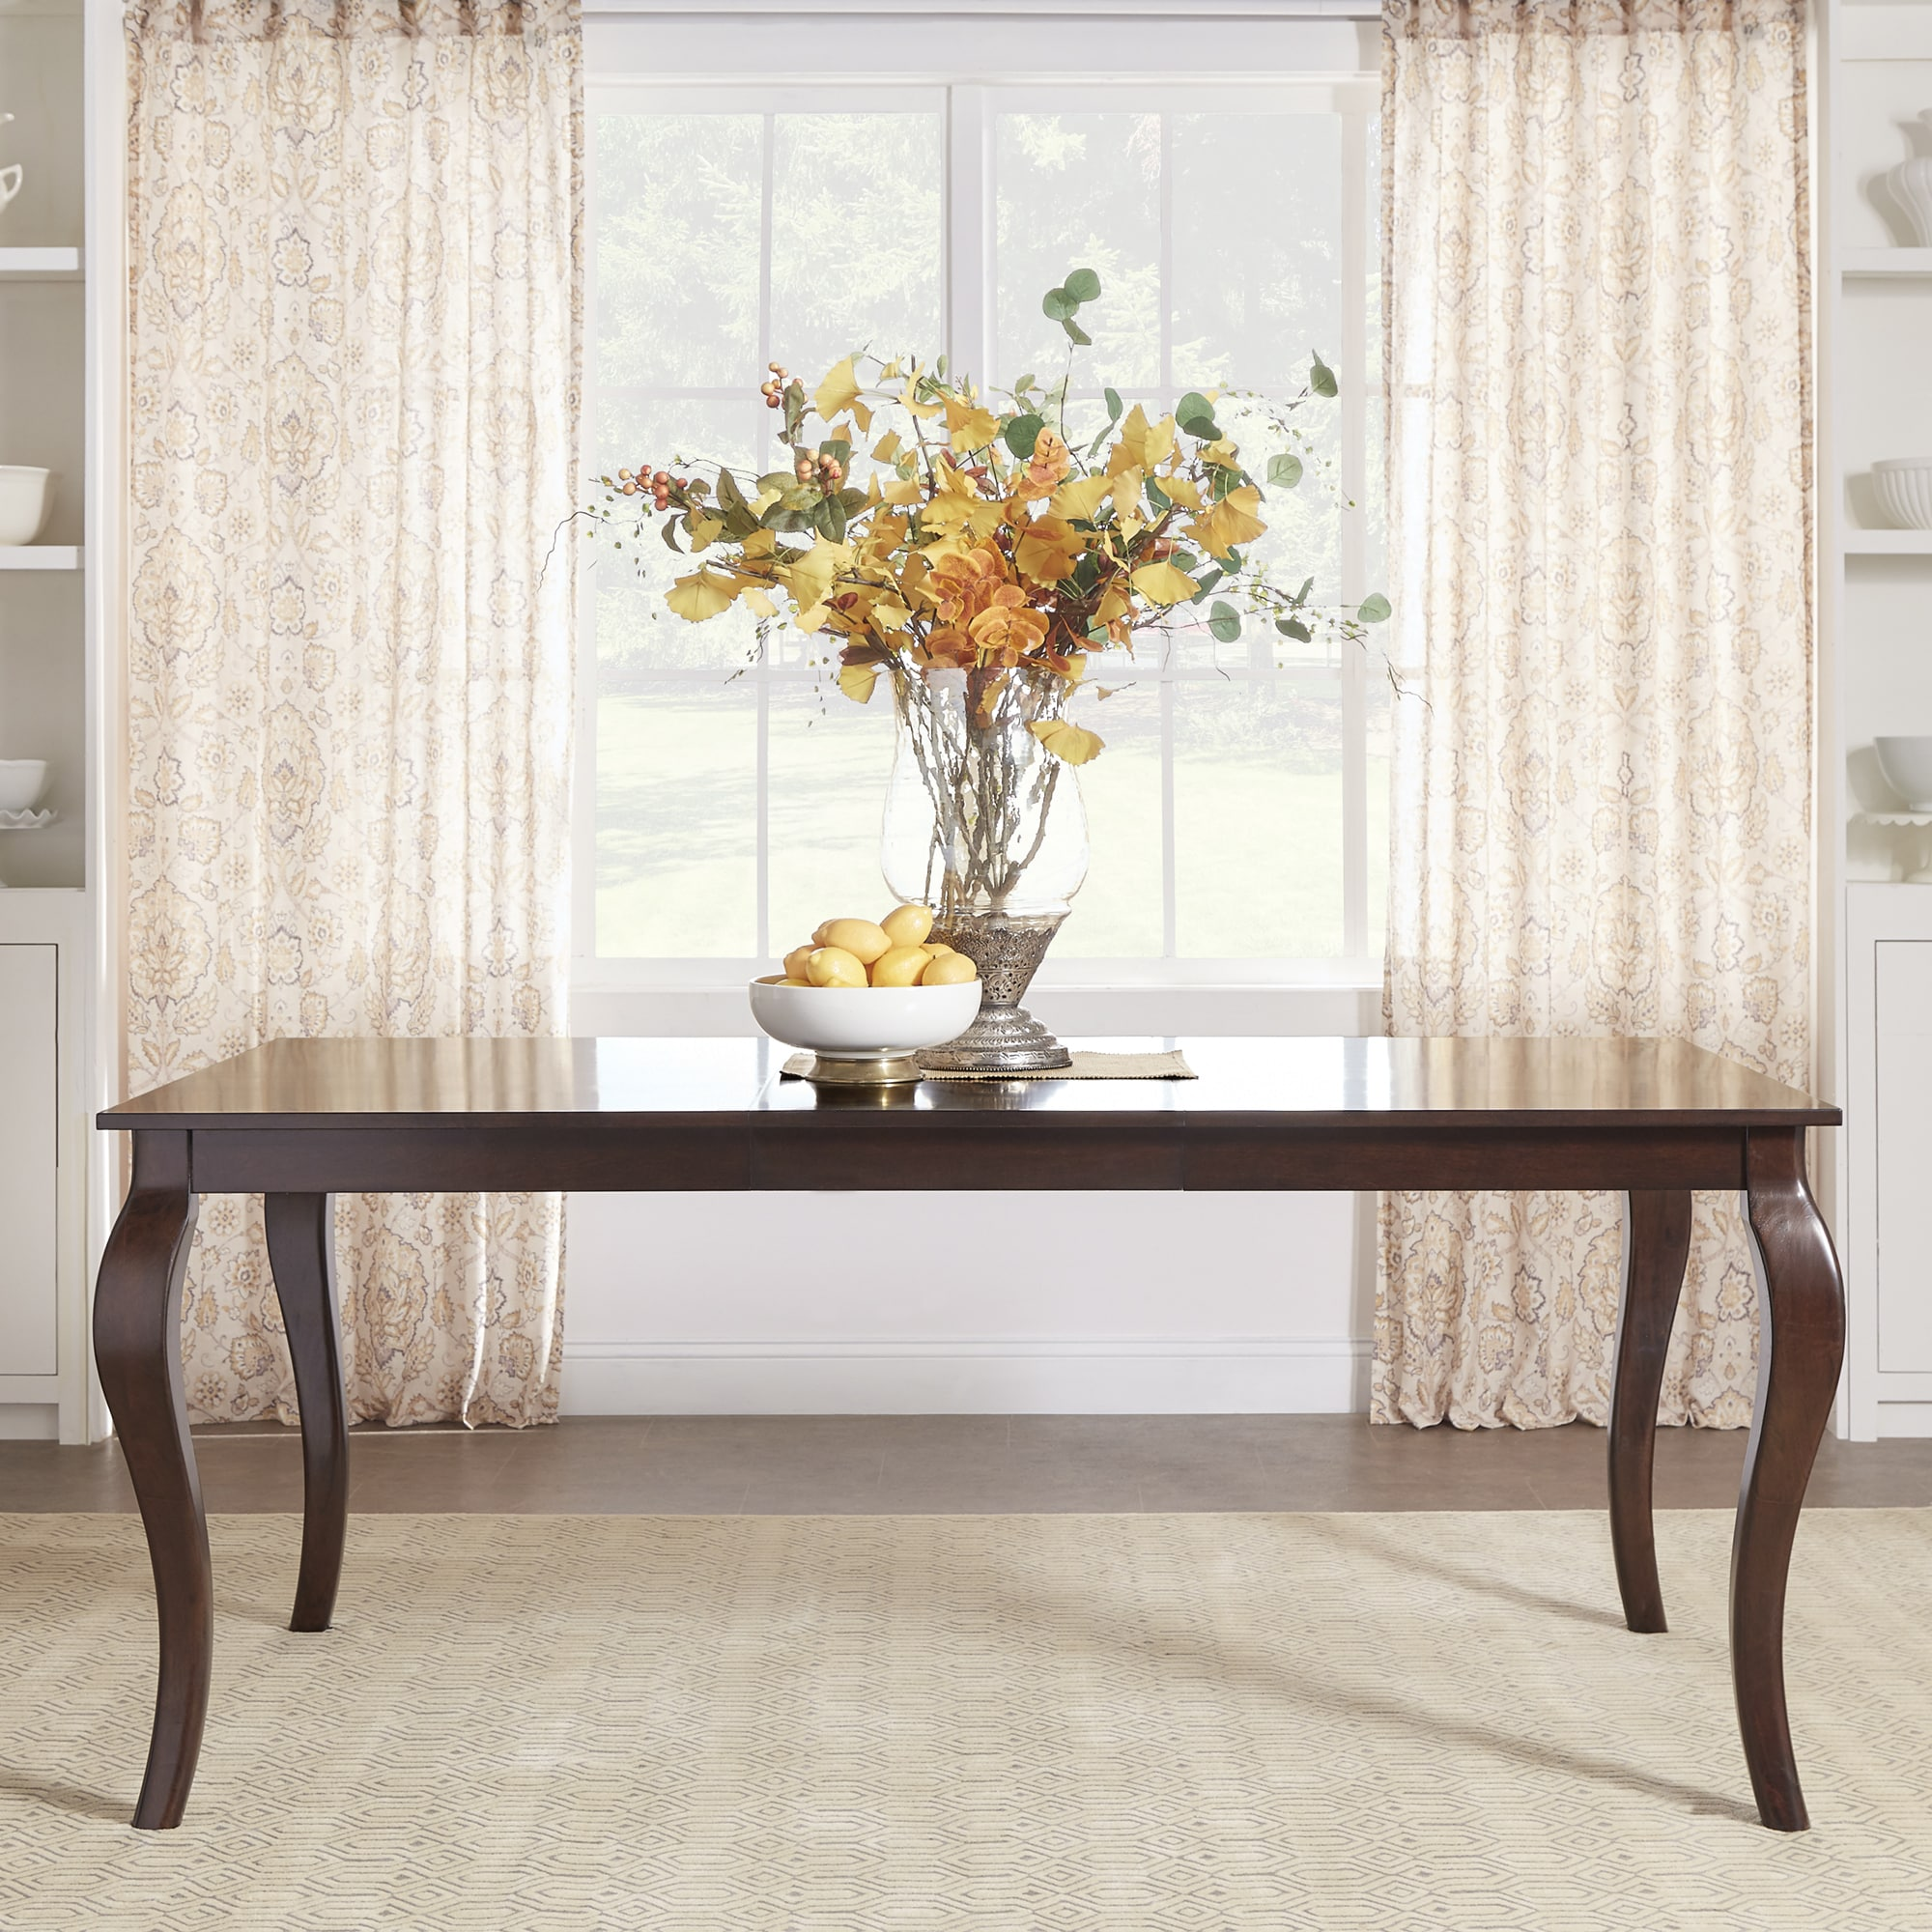 Pranzo Rectangular 72-inch Extending Dining Table and Set with Cabriole Legs  by iNSPIRE Q Classic - Free Shipping Today - Overstock.com - 19700515